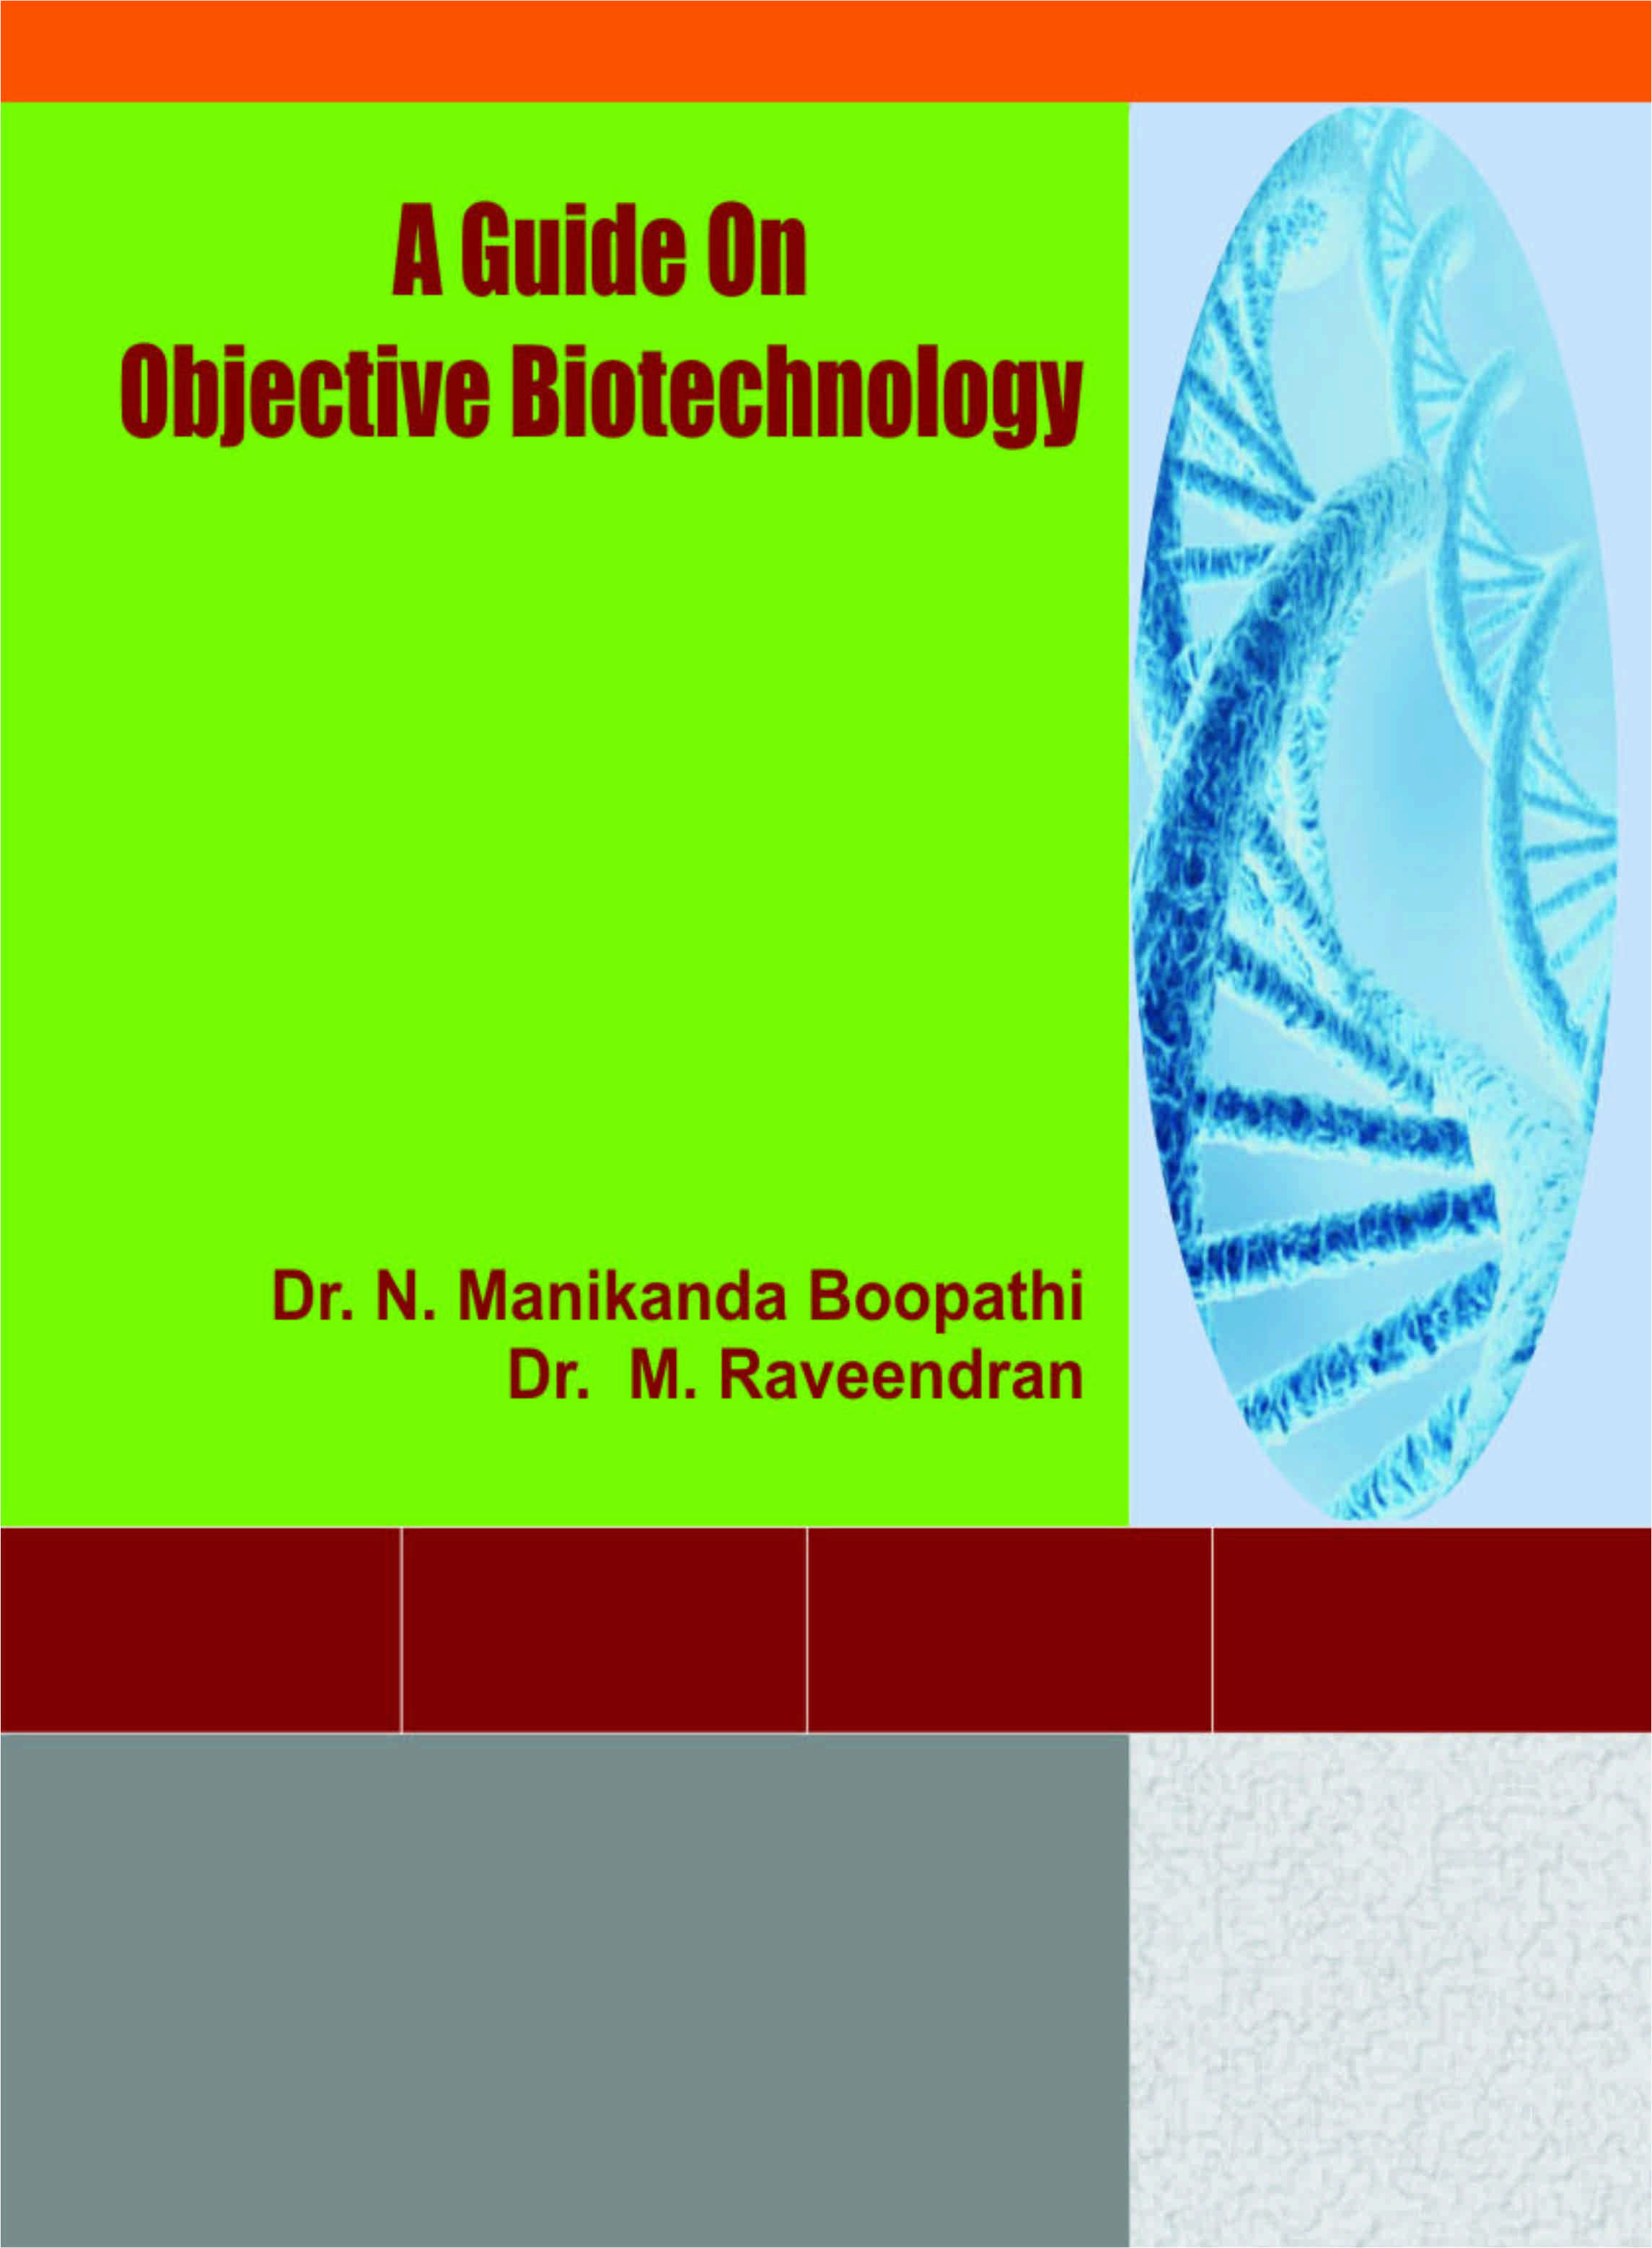 Guide on Objective Biotechnology